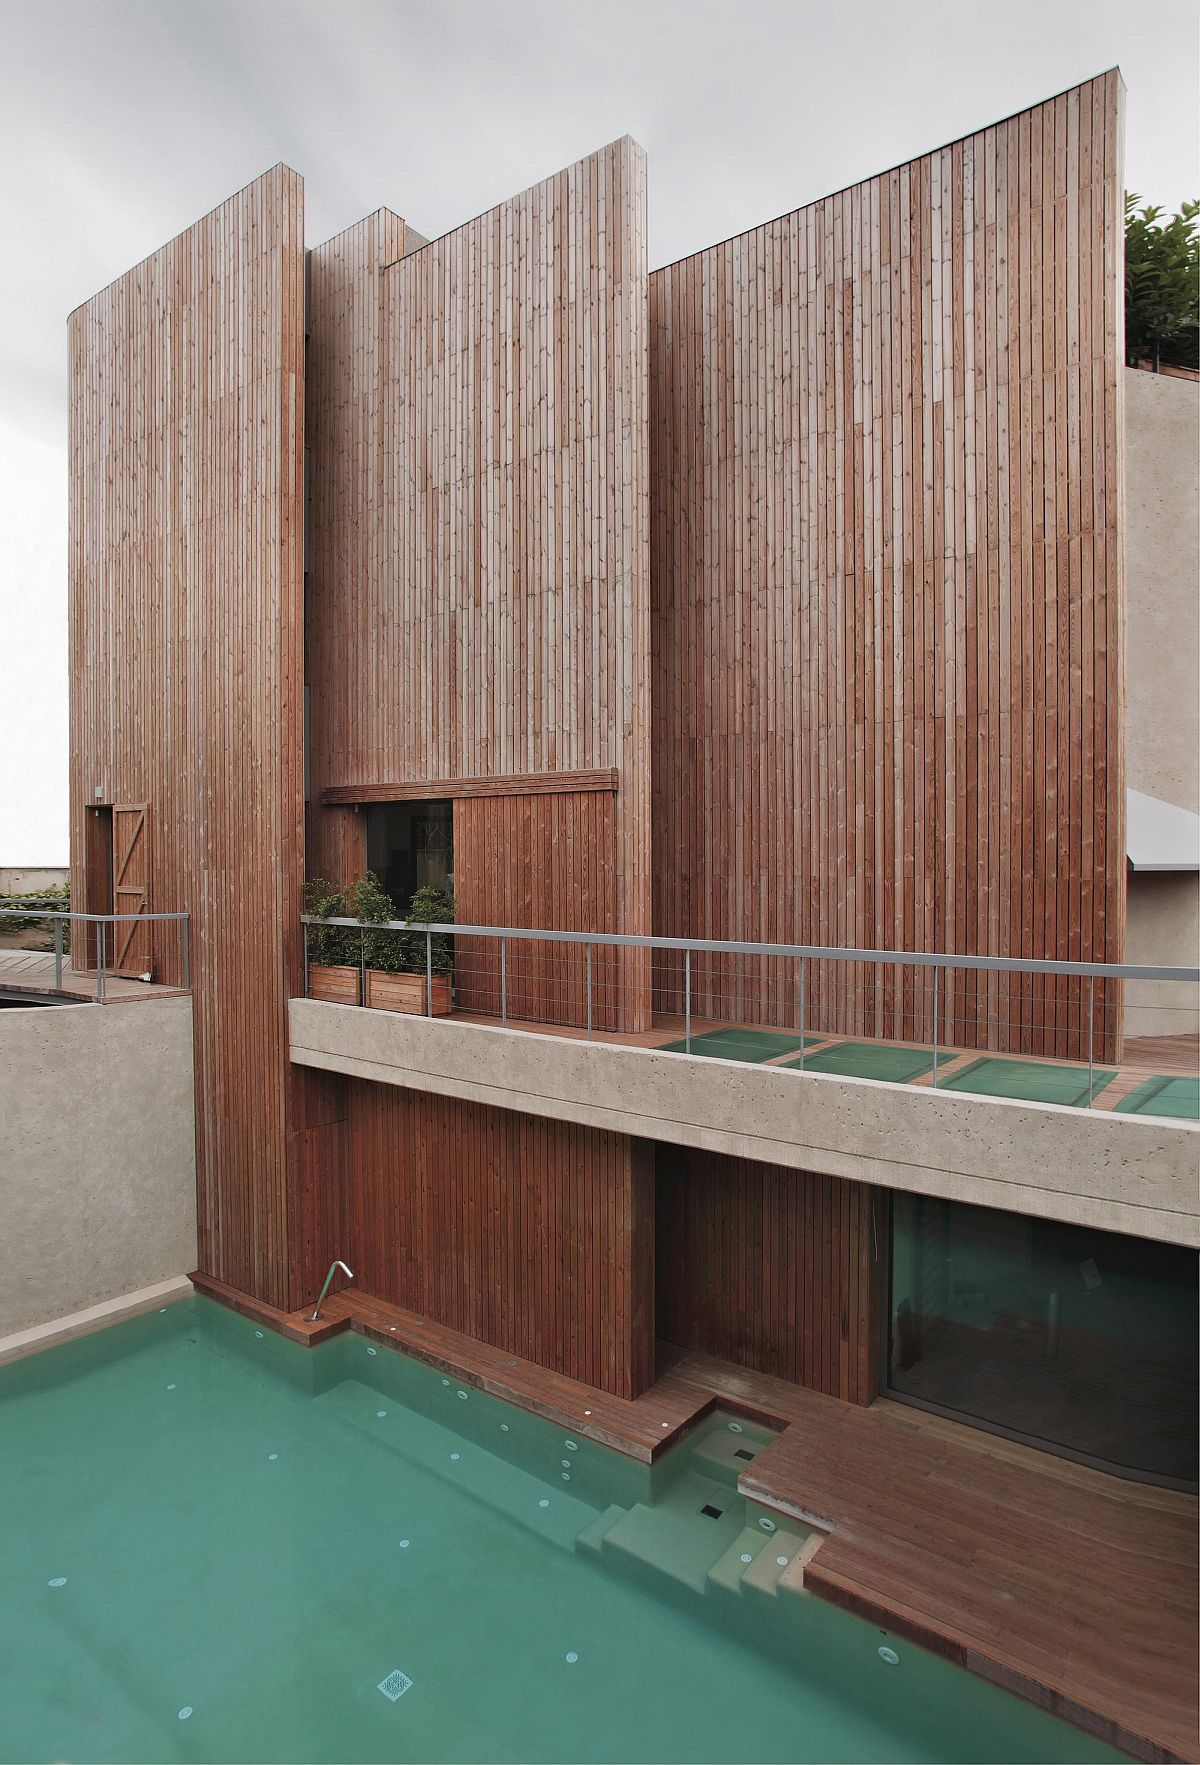 Wooden slats create a smart and bespoke facade that gives the Barcelona home a distinct look